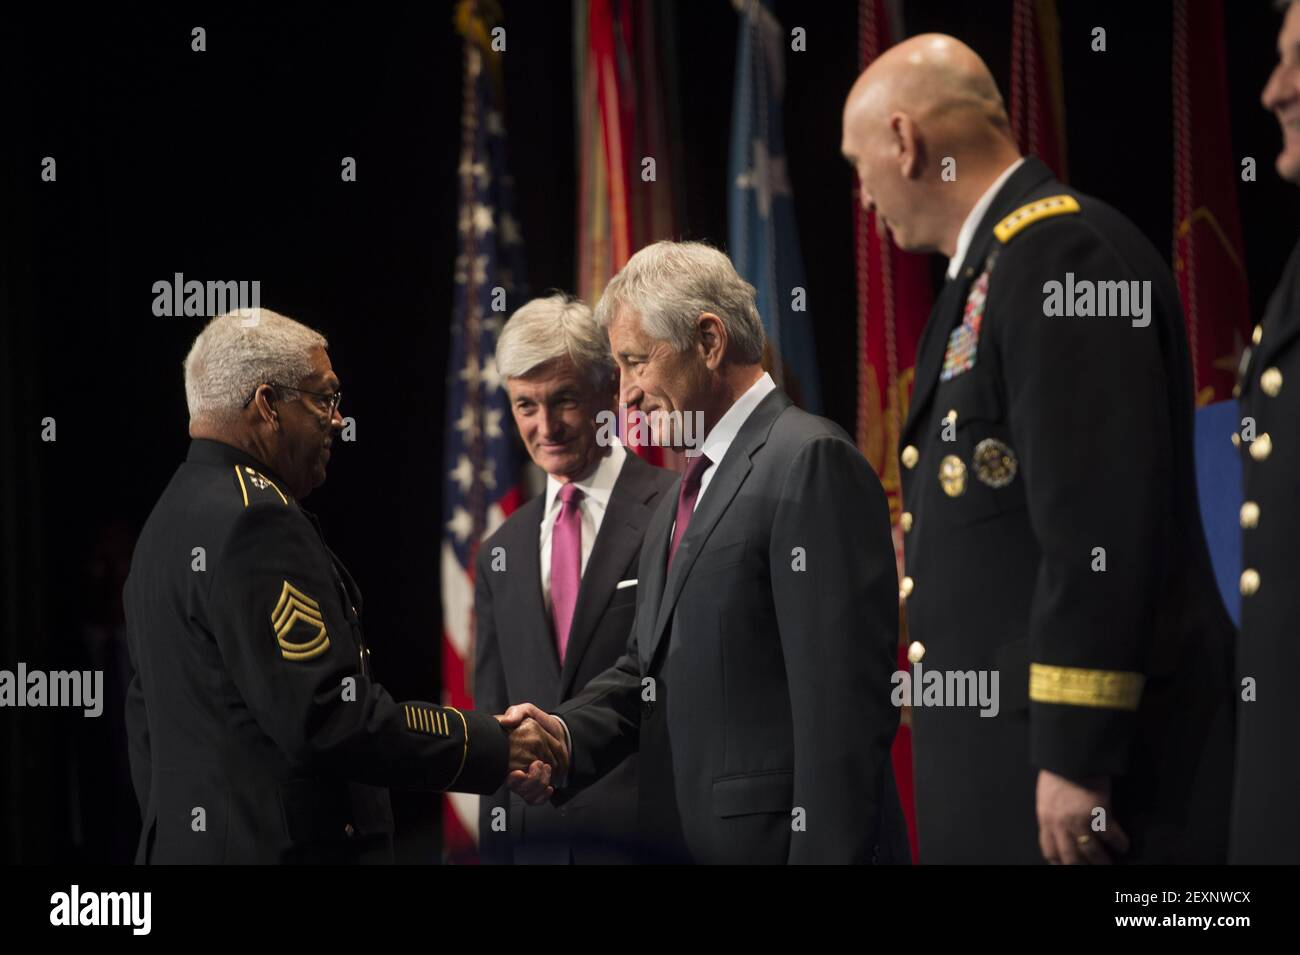 Secretary of Defense Chuck Hagel, second from right, shakes hands with retired U.S. Army Sgt. 1st Class Melvin Morris before presenting him with a Medal of Honor flag during a Hall of Heroes induction ceremony at the Pentagon in Arlington, Va., March 19, 2014. (Photo by Sgt. Aaron Hostutler, U.S. Marine Corps/DoD/Sipa USA) Stock Photo